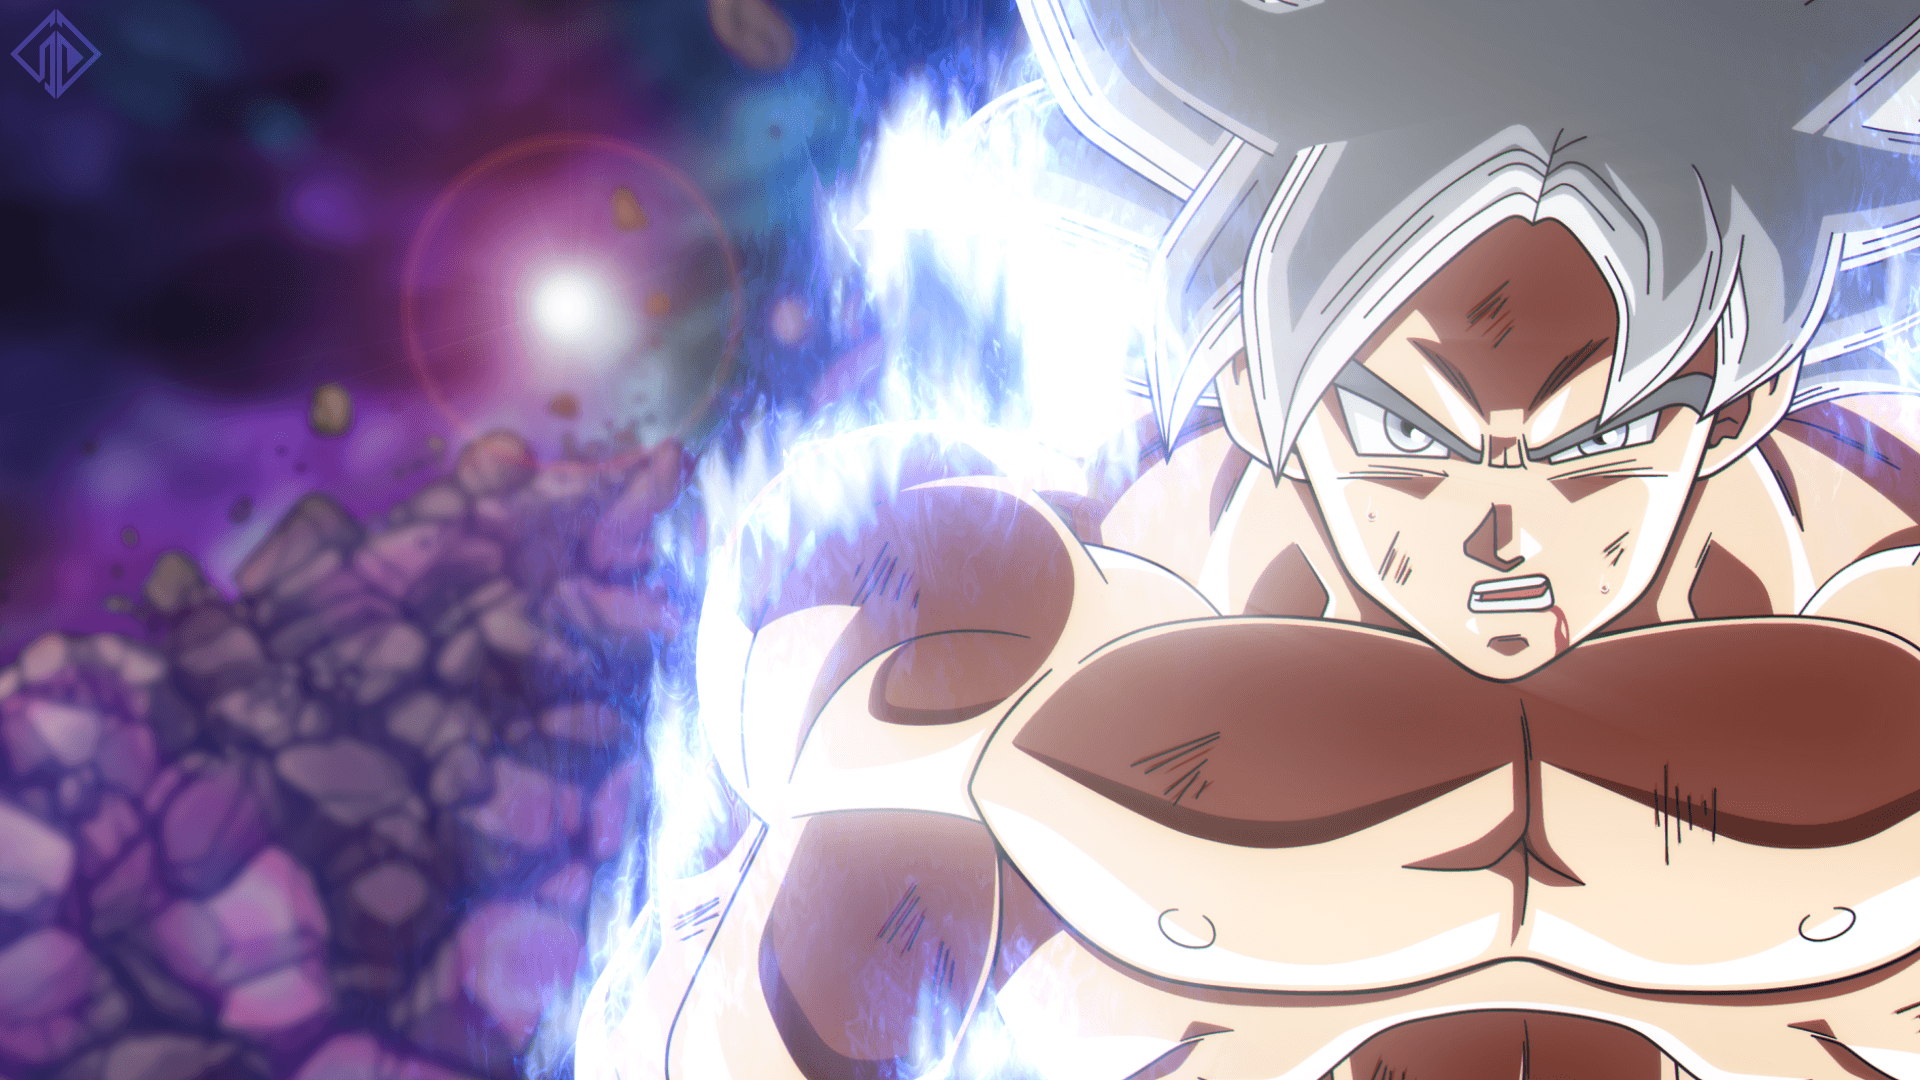 Goku Super Saiyan Silver Form Mastered UI Full HD Wallpapers and